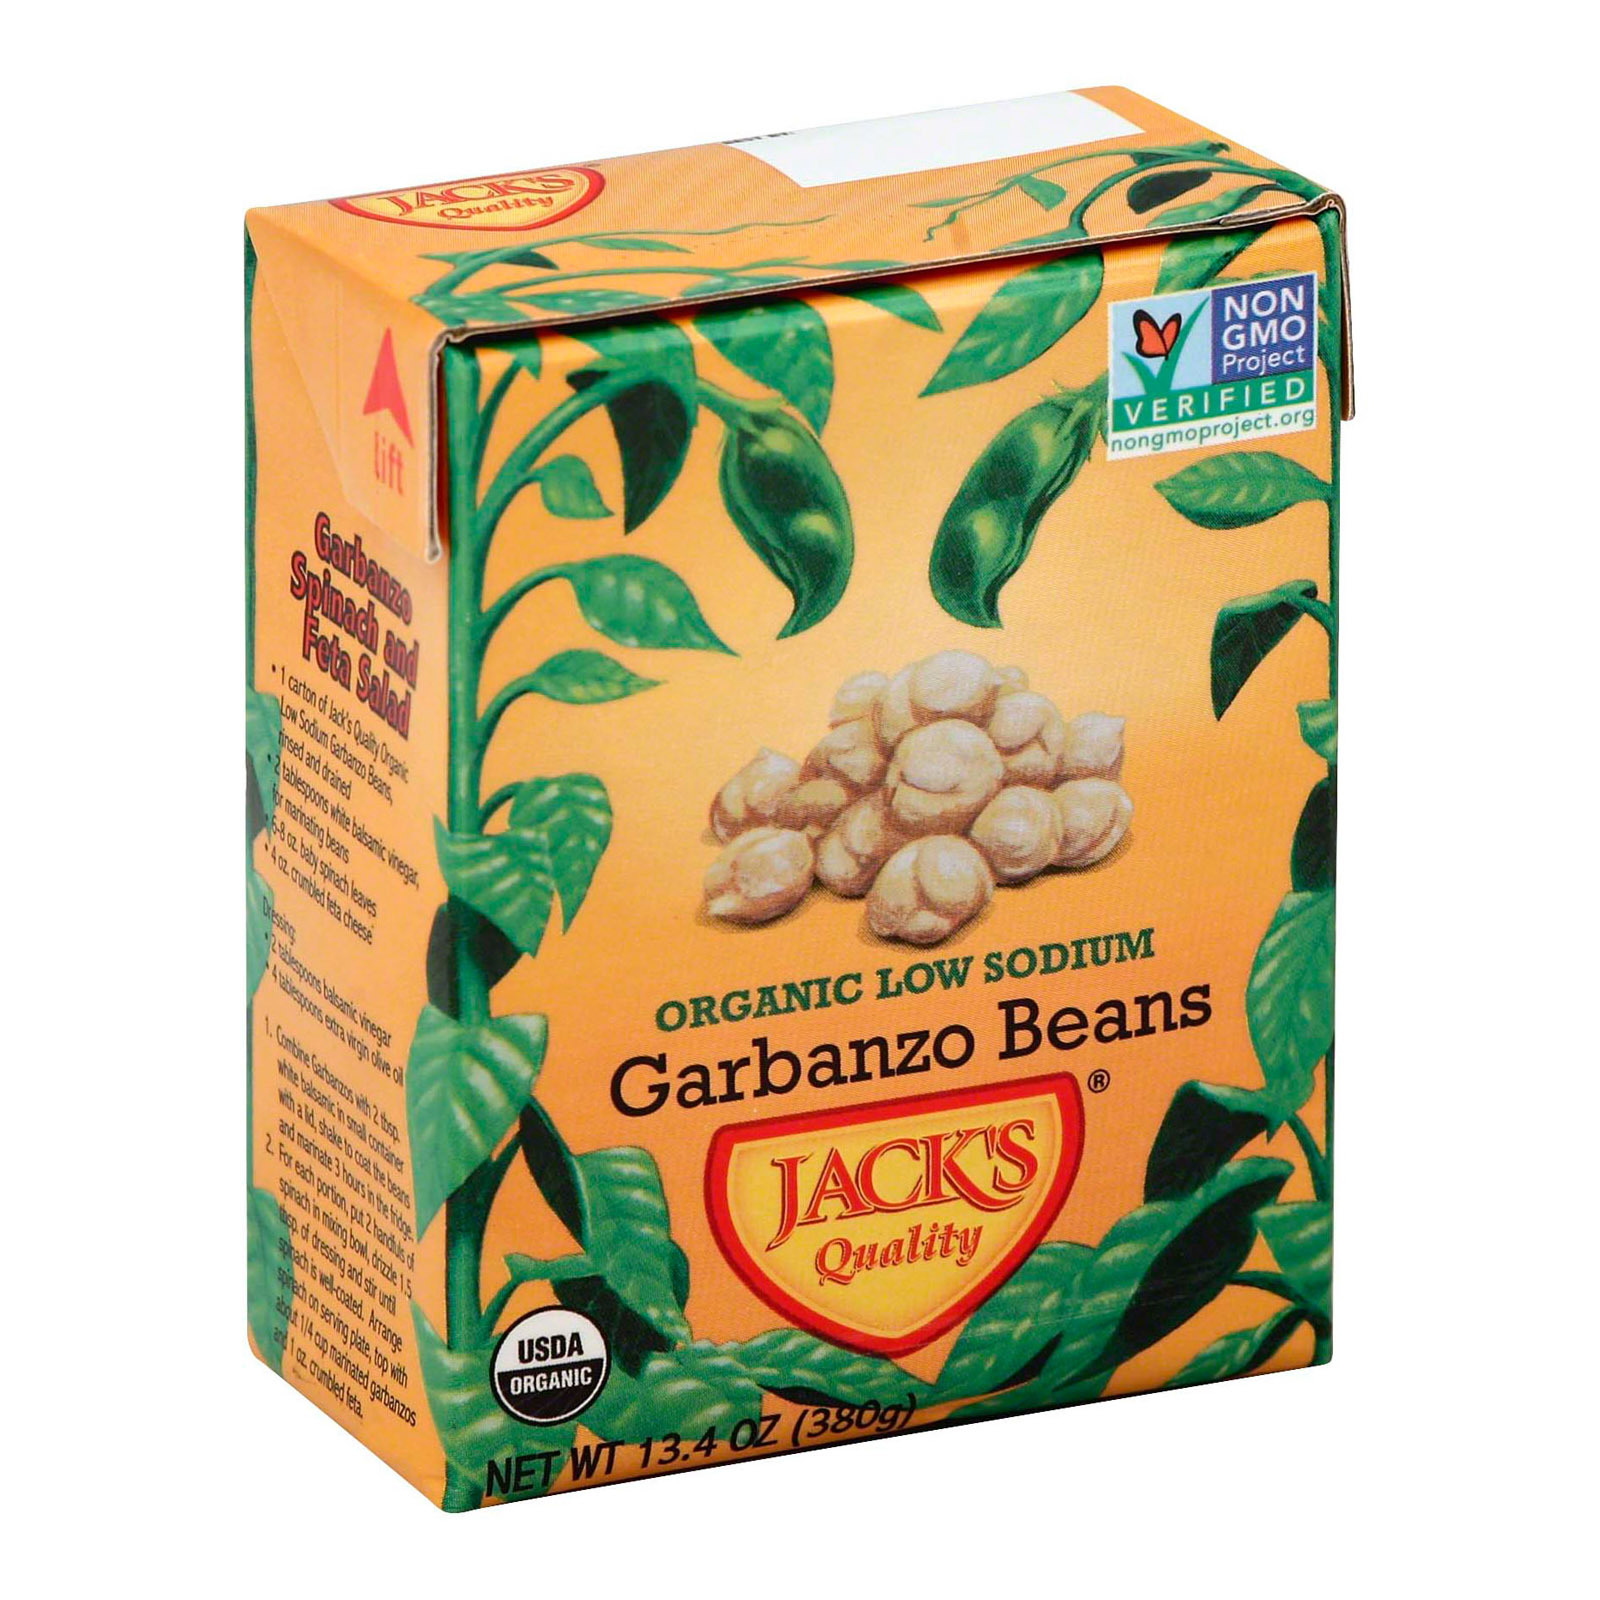 Jack's Quality Organic Garbanzo Beans - Low Sodium - Case of 8 - 13.4 oz